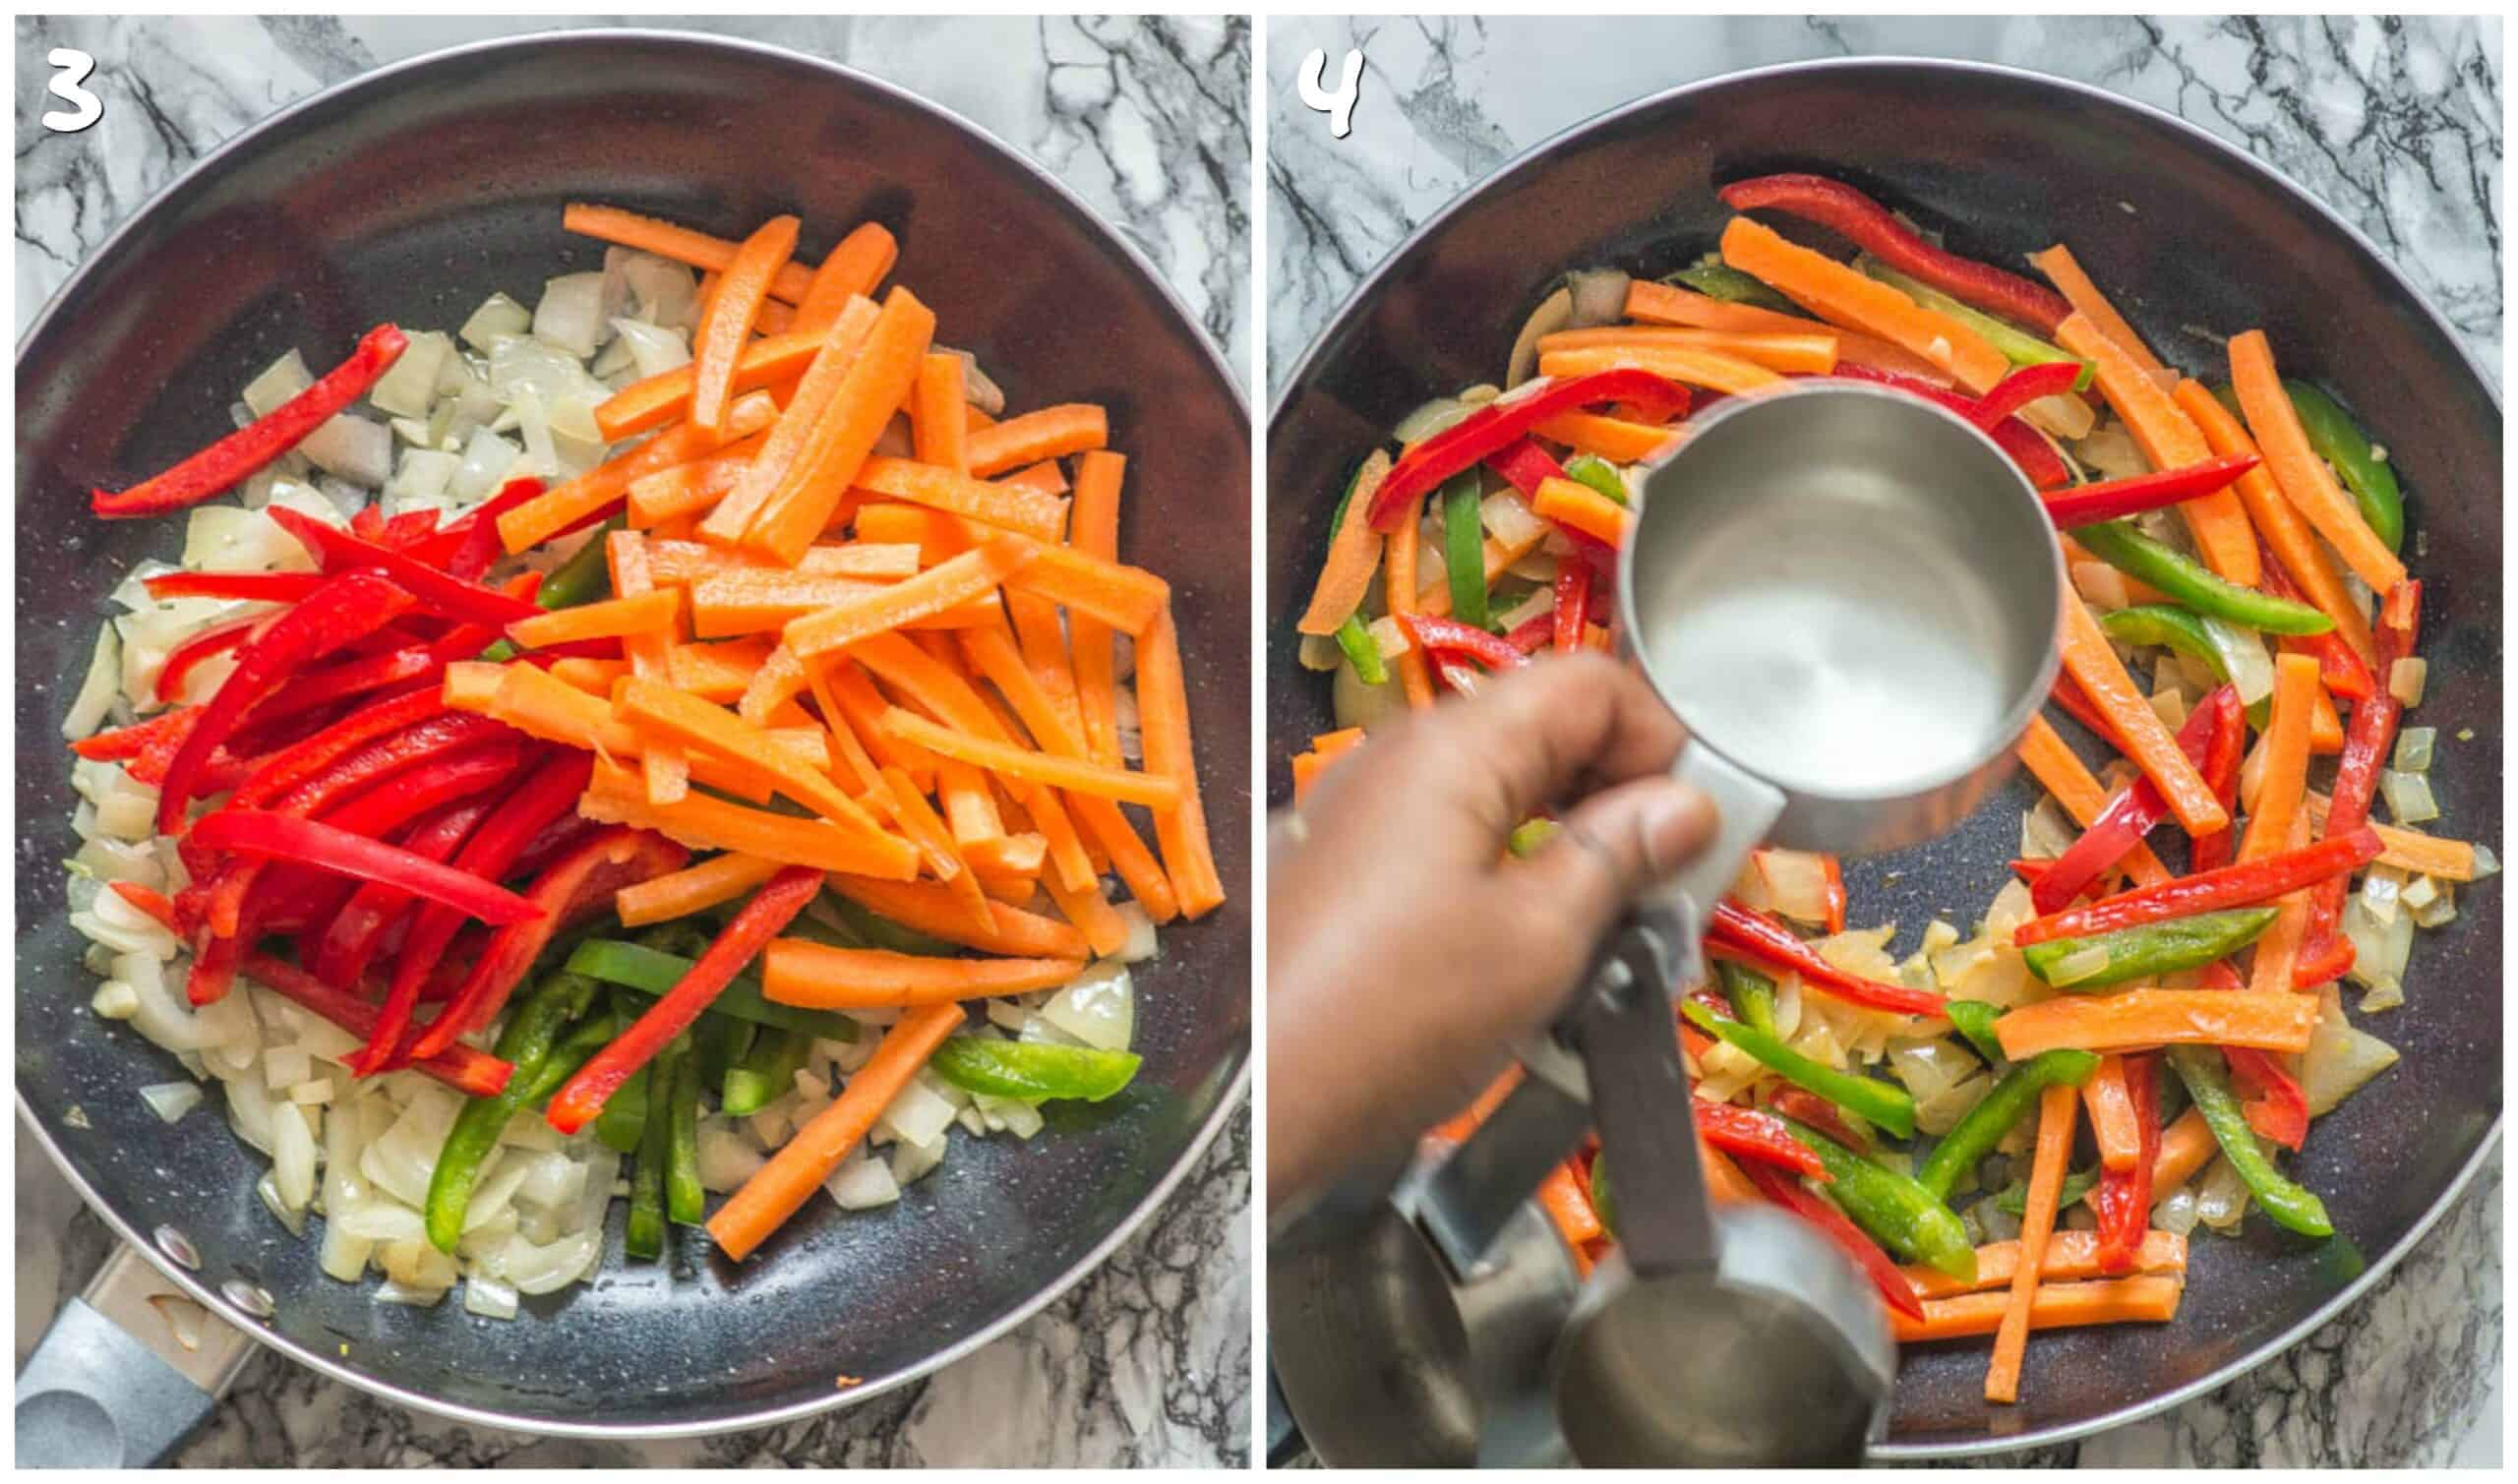 steps 3-4 sauteeing vegetables